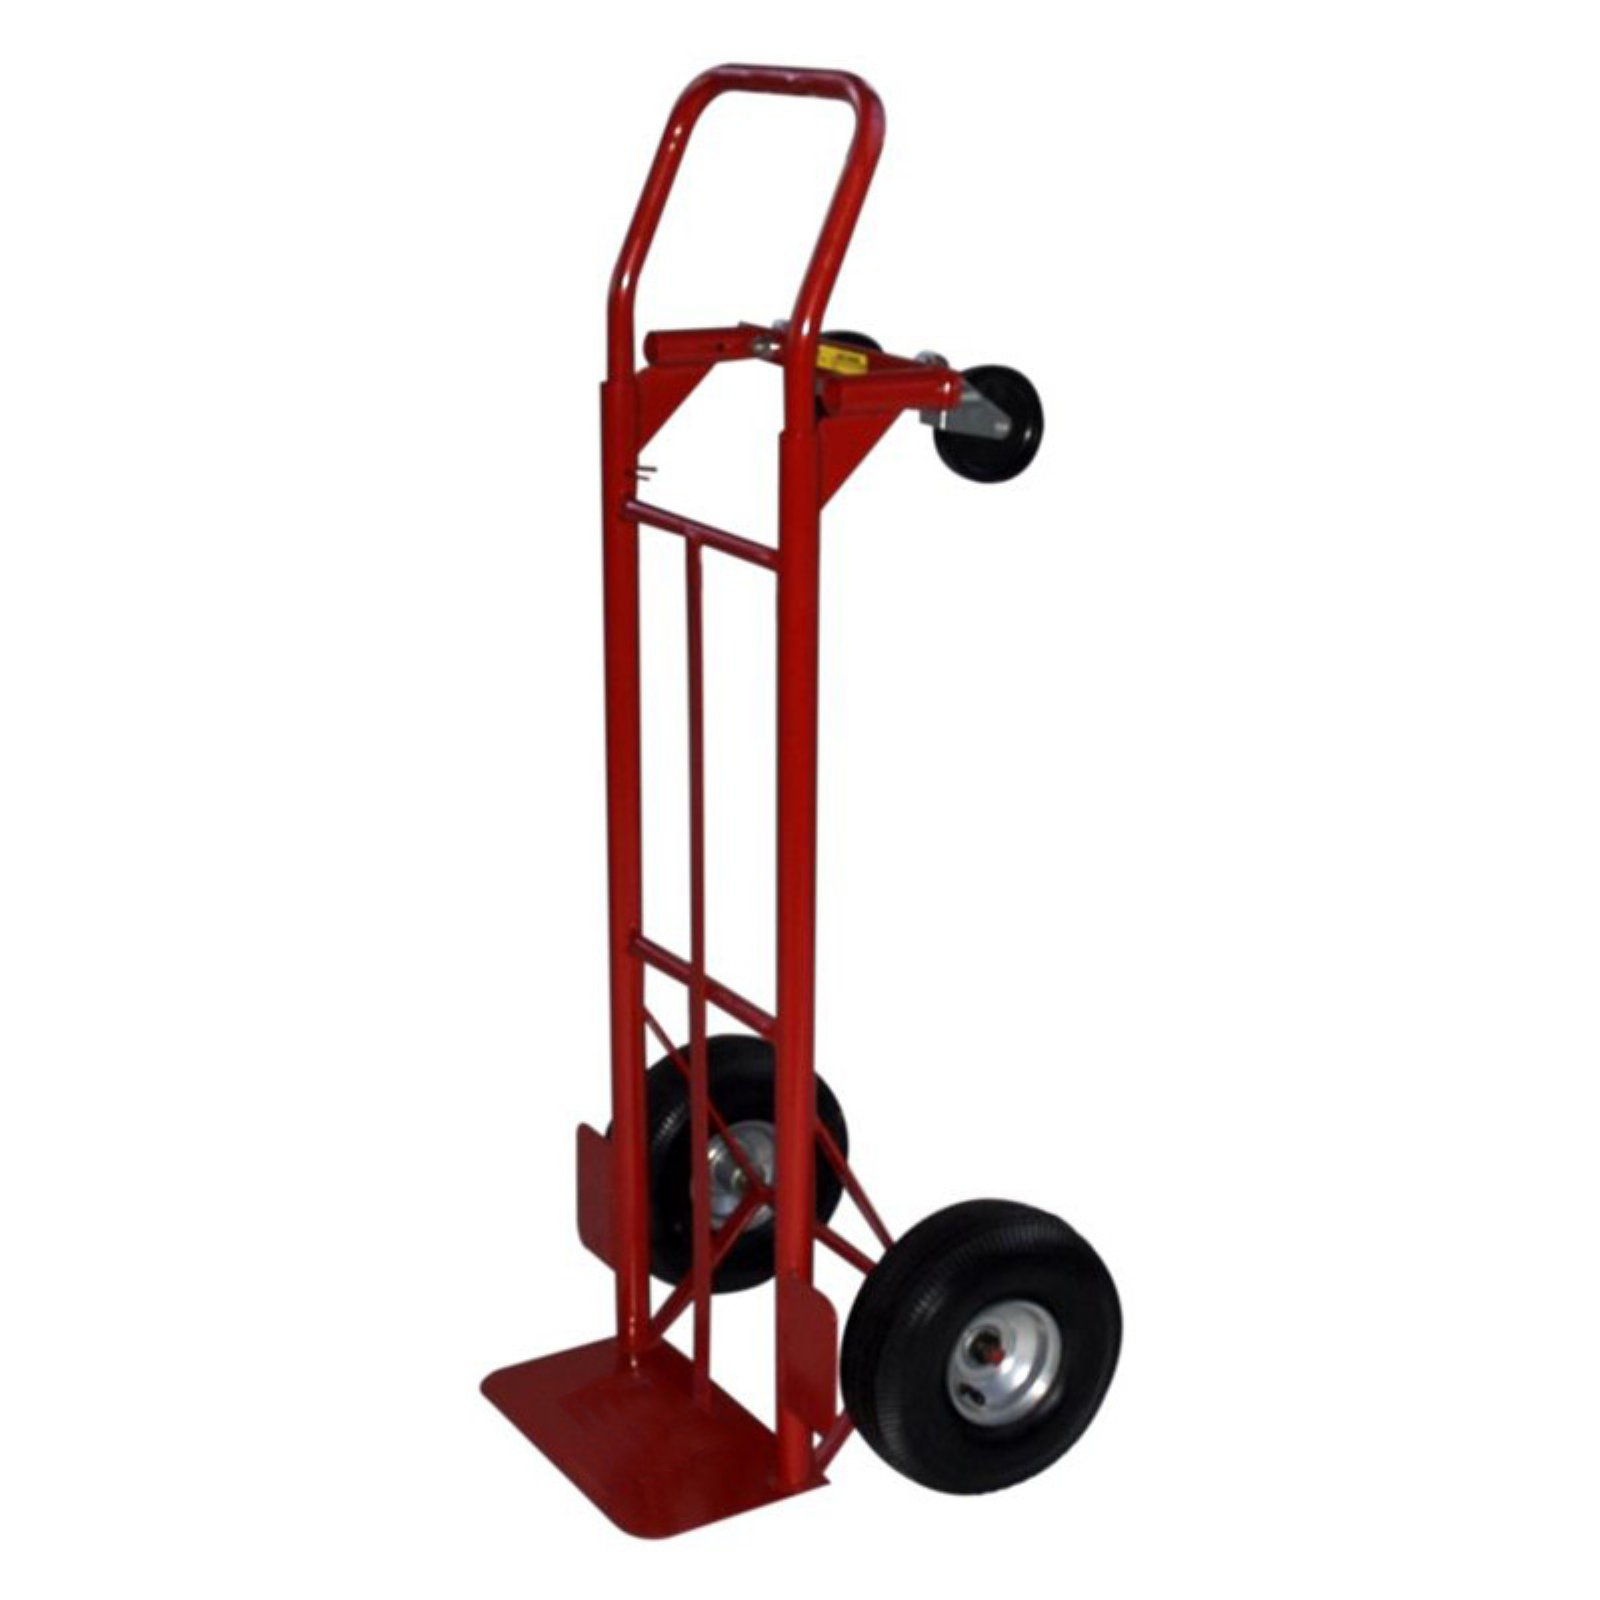 Milwaukee Convertible Hand Truck 10 in. Pneumatic Tires by Gleason Industrial Prod Inc